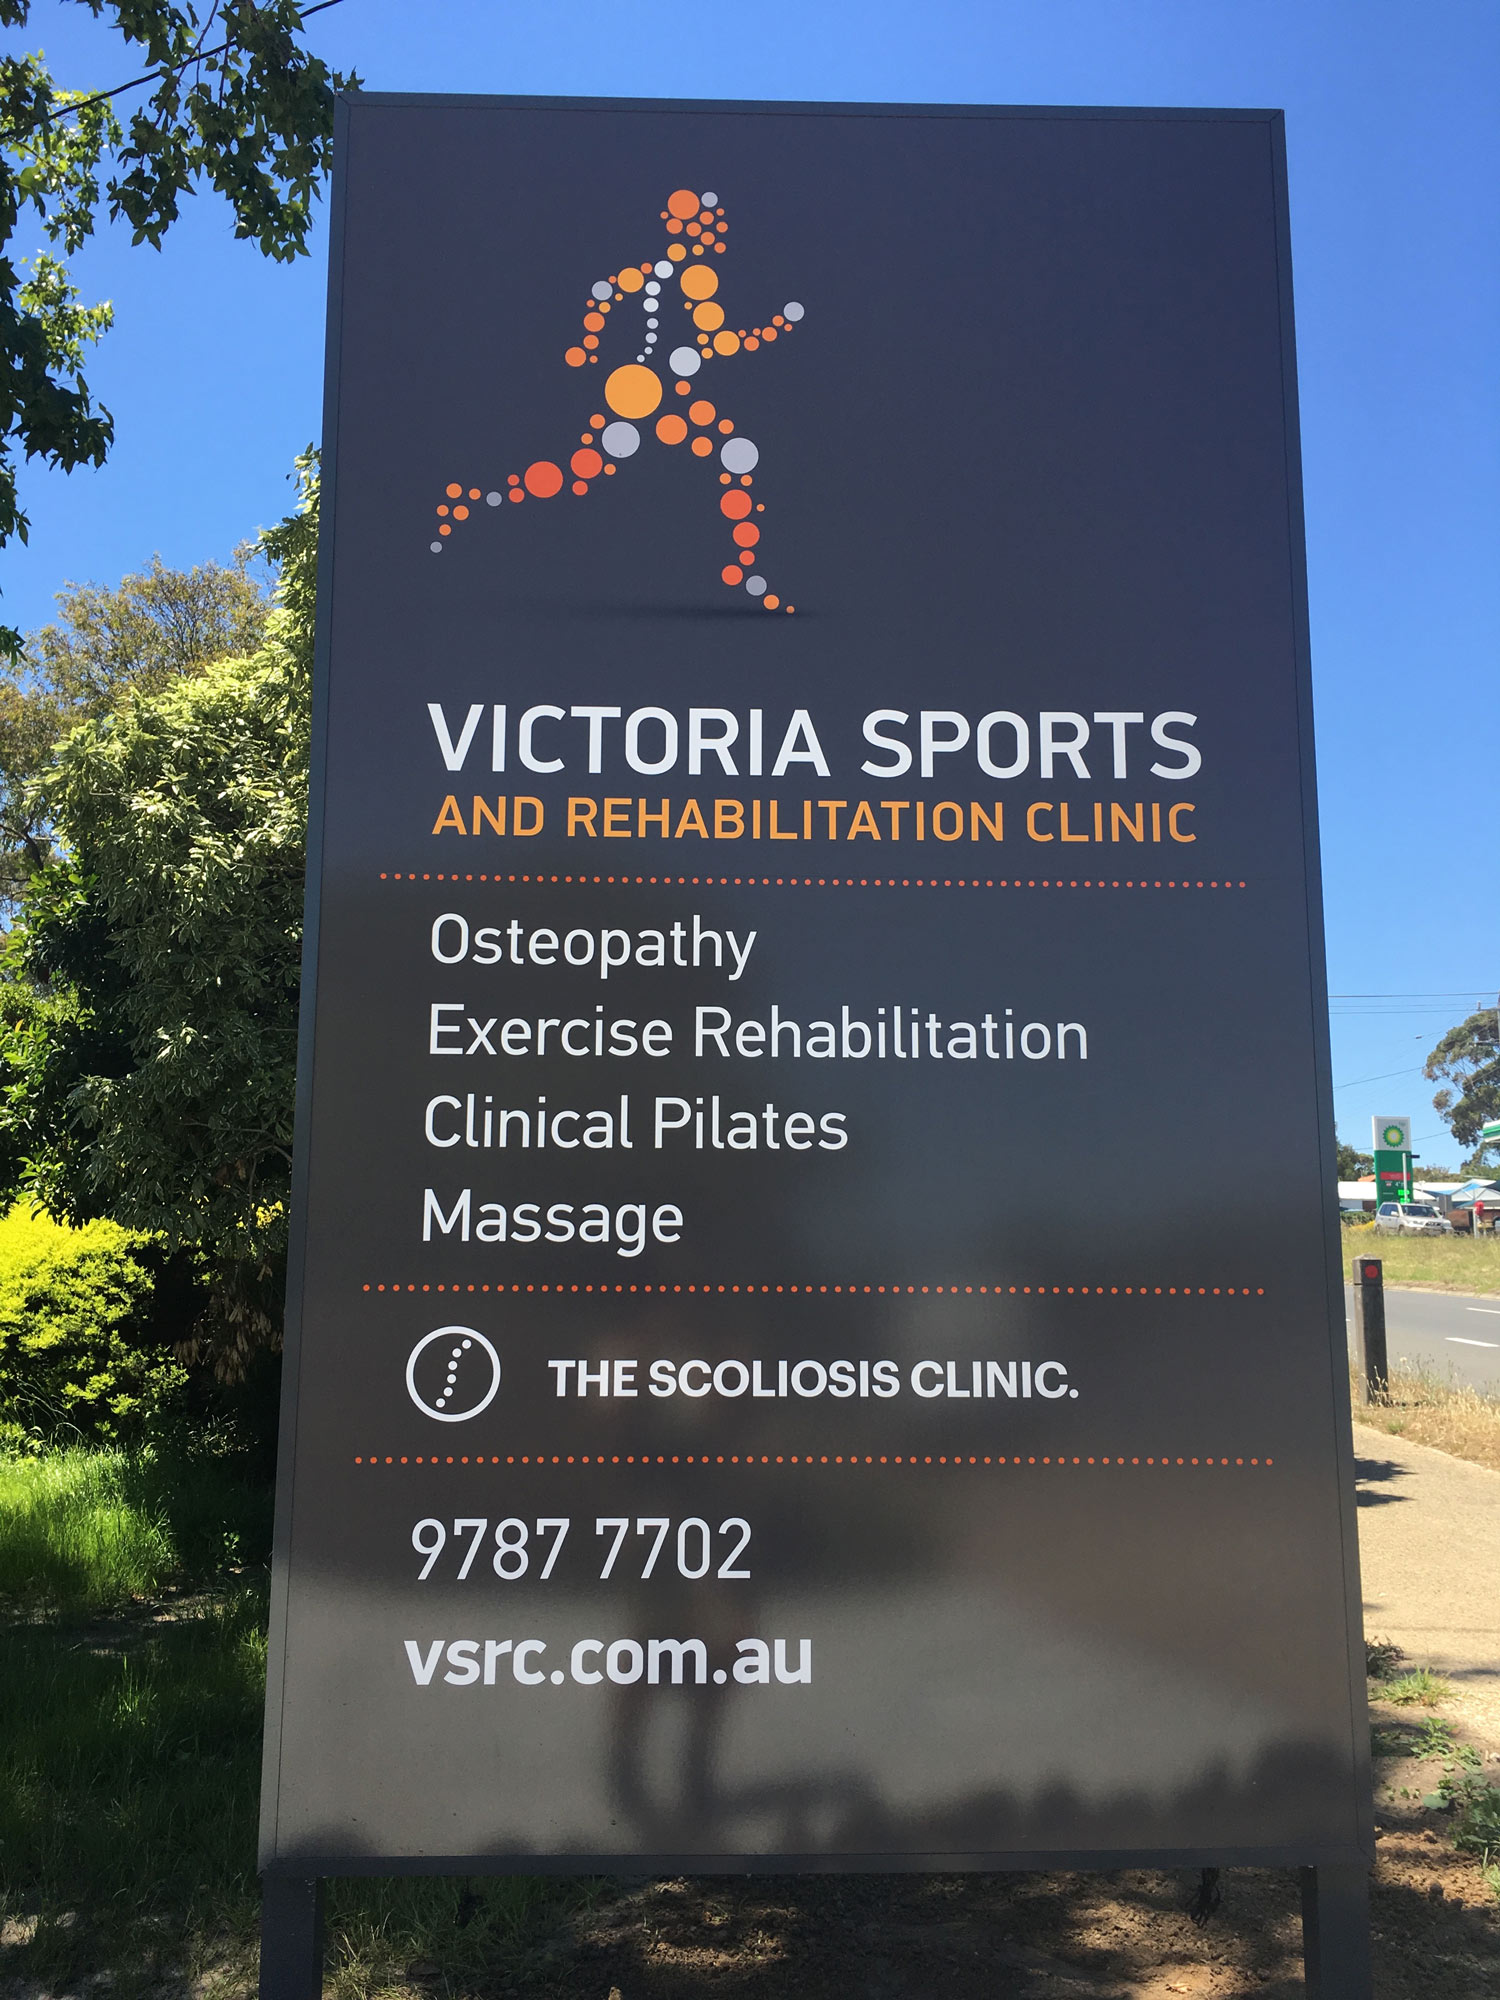 VSRC Signage Design, environmental signage, created by south